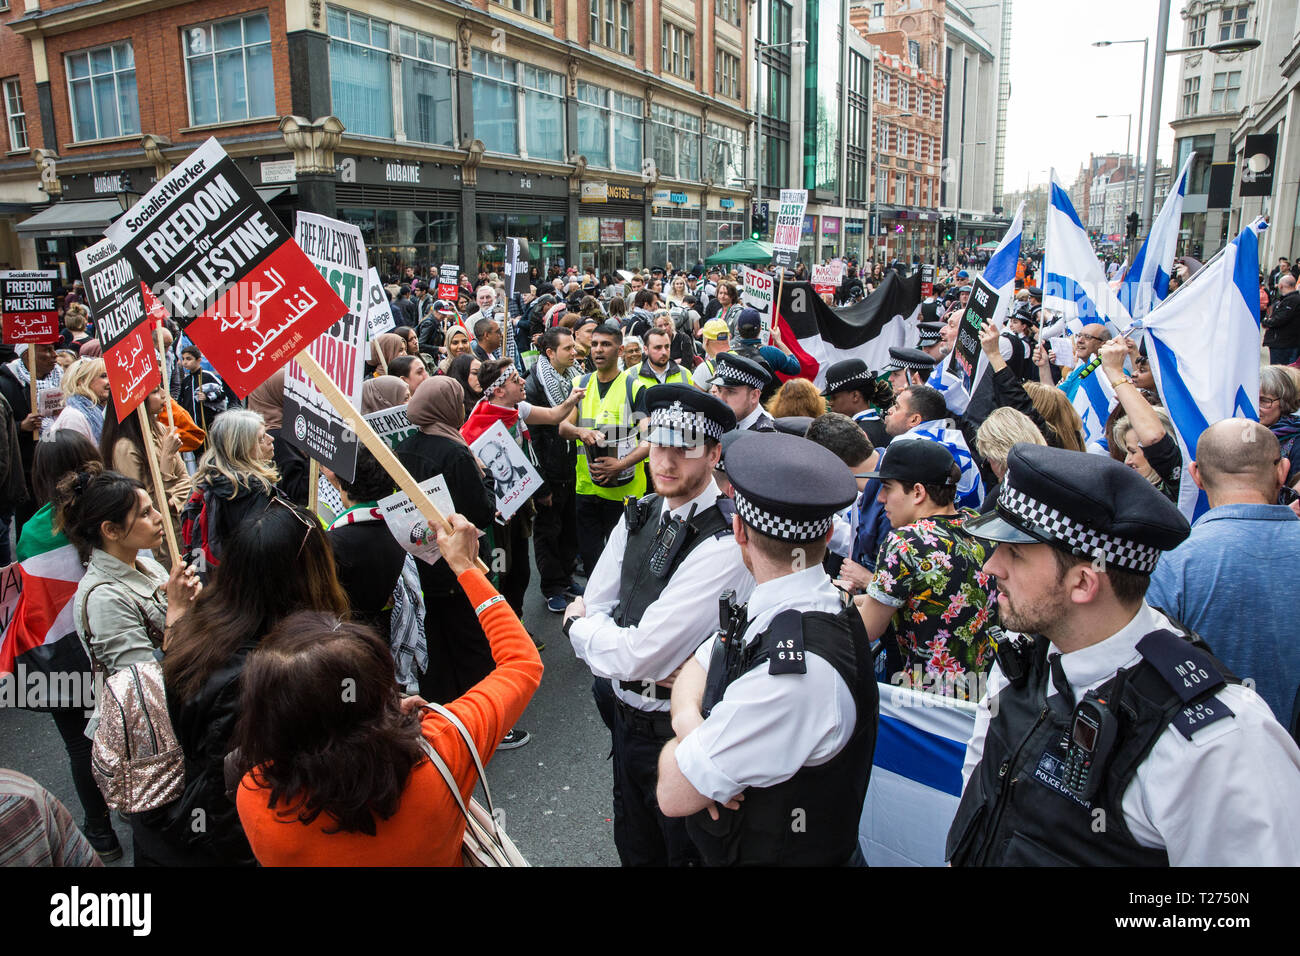 London, UK. 30th March, 2019. Pro-Palestinian campaigners attending a Rally for Palestine outside the Israeli embassy to demand freedom, justice and equality for the Palestinian people stand in front of a small pro-Israel counter-protest Credit: Mark Kerrison/Alamy Live News Stock Photo